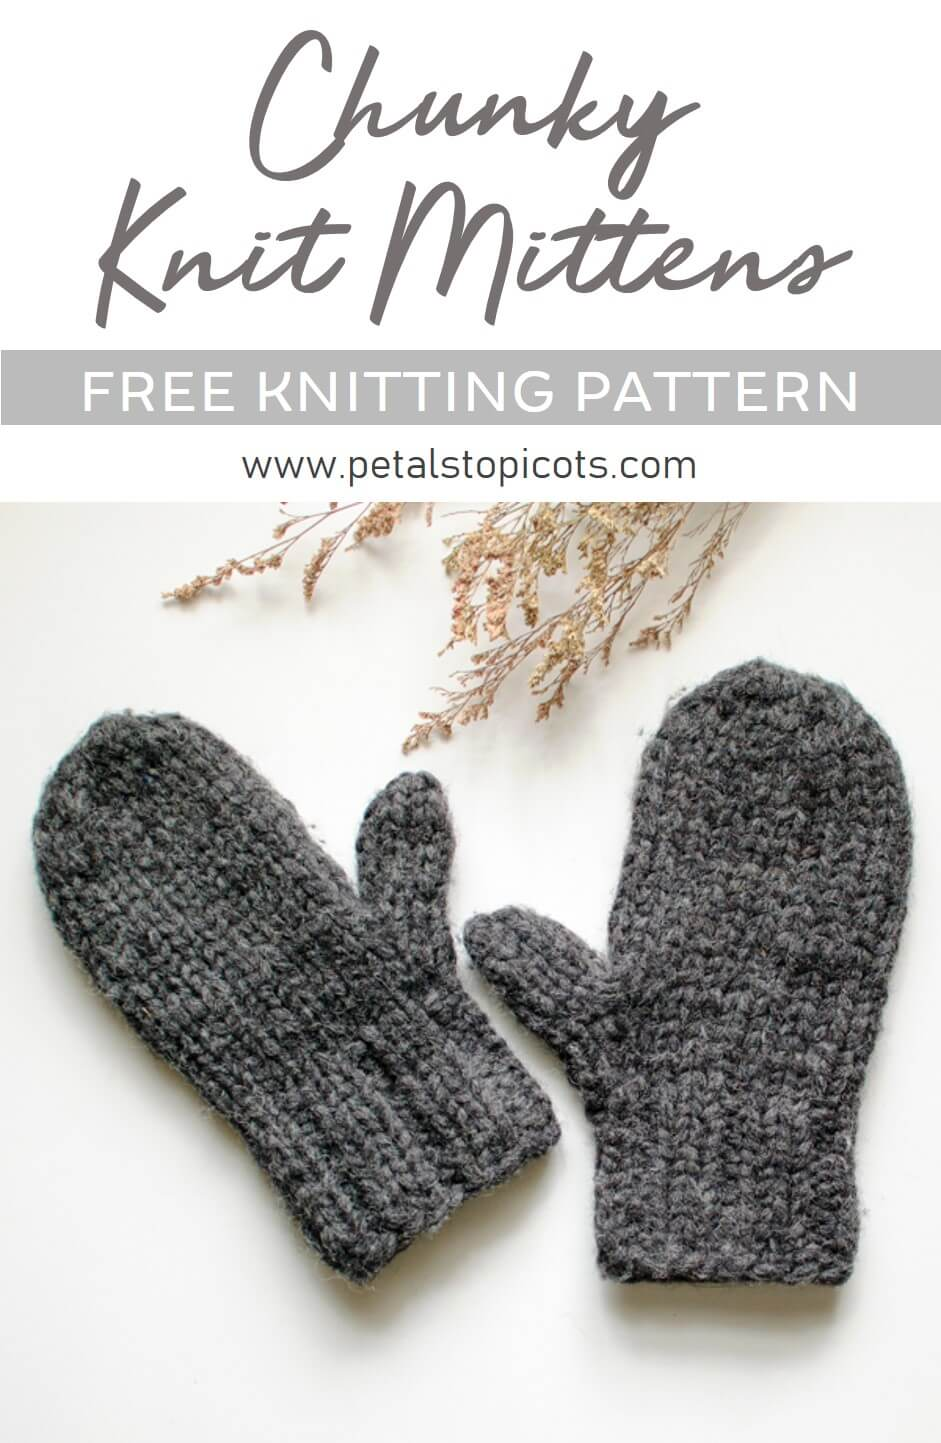 This knit mittens pattern works up super quickly and is a great basic pattern for all experience levels. They are so warm & toasty too!